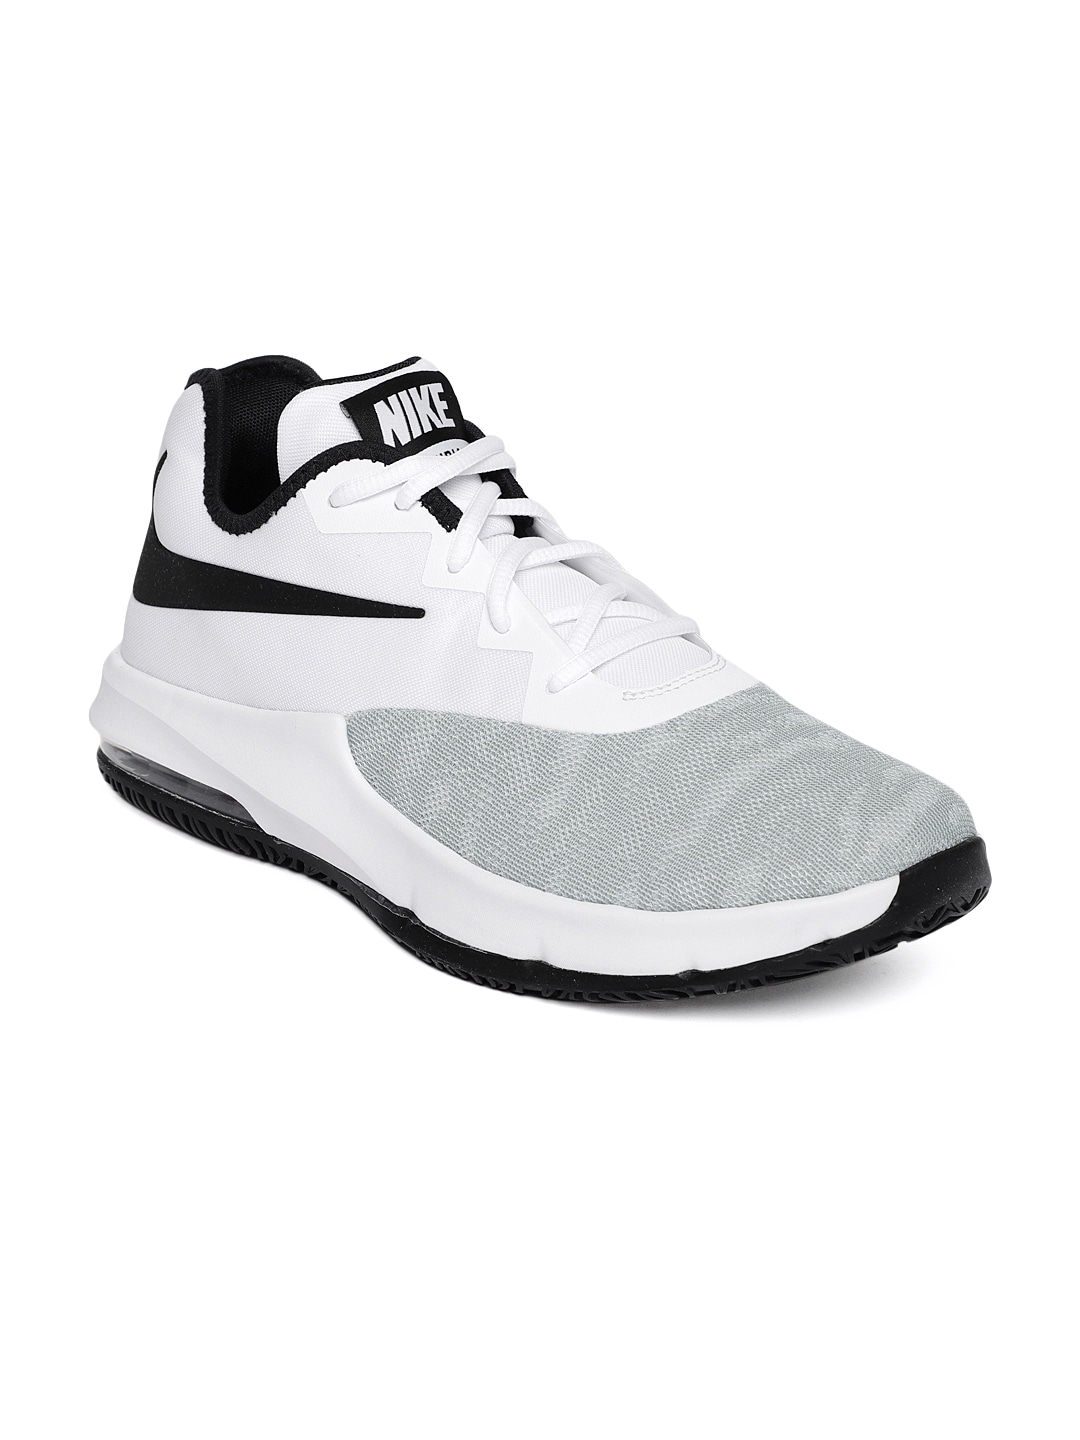 f12bae9f8547 Nike Basketball Shoes